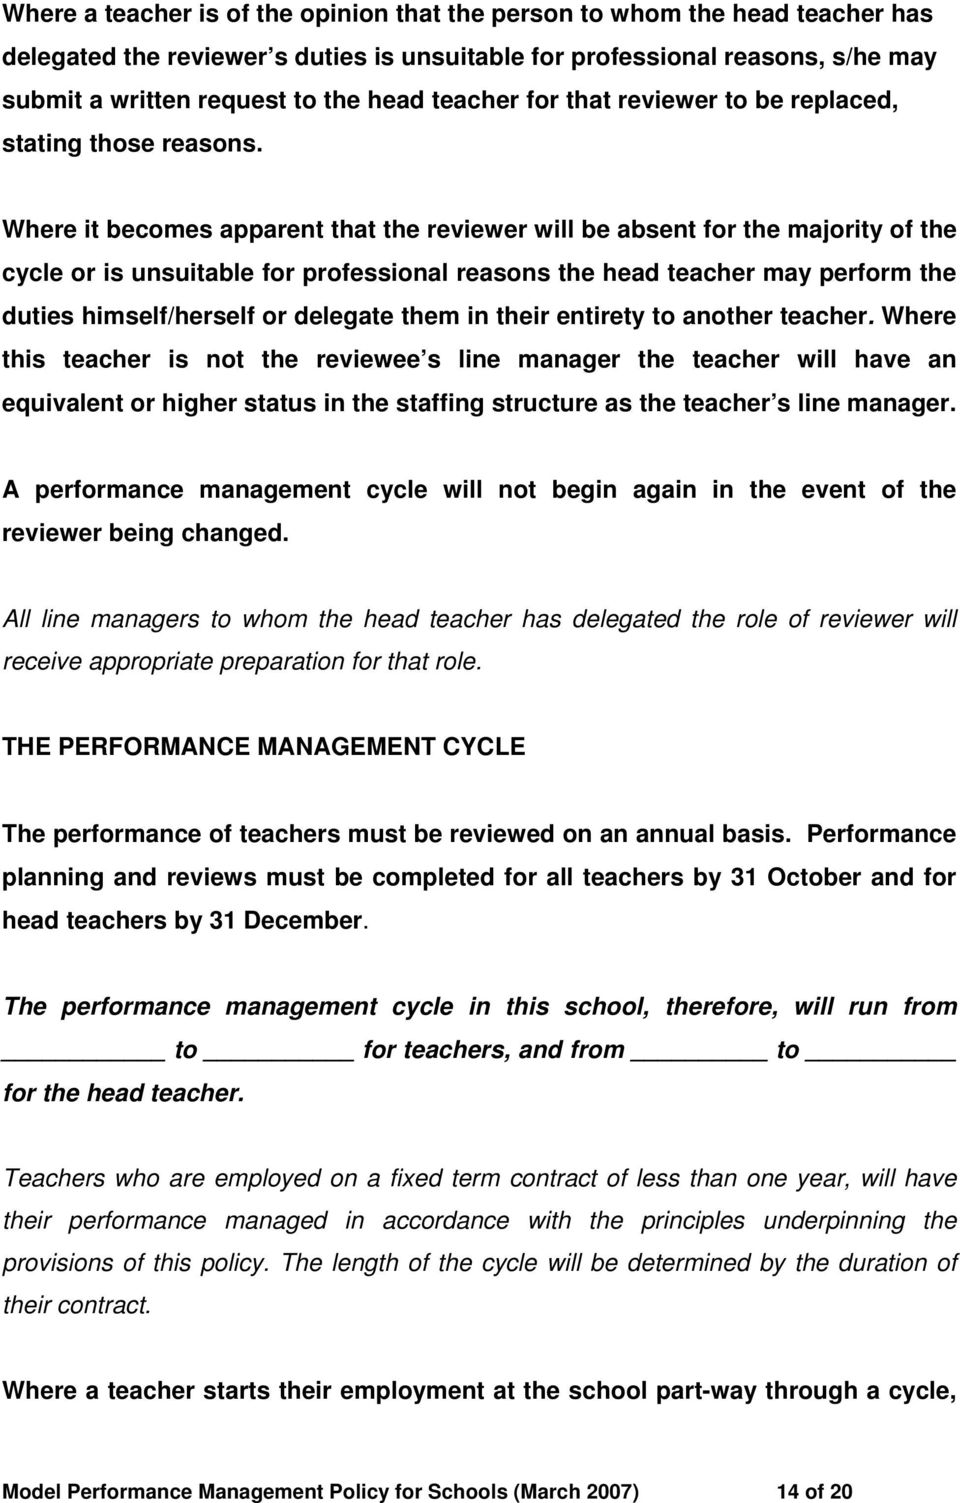 Where it becomes apparent that the reviewer will be absent for the majority of the cycle or is unsuitable for professional reasons the head teacher may perform the duties himself/herself or delegate